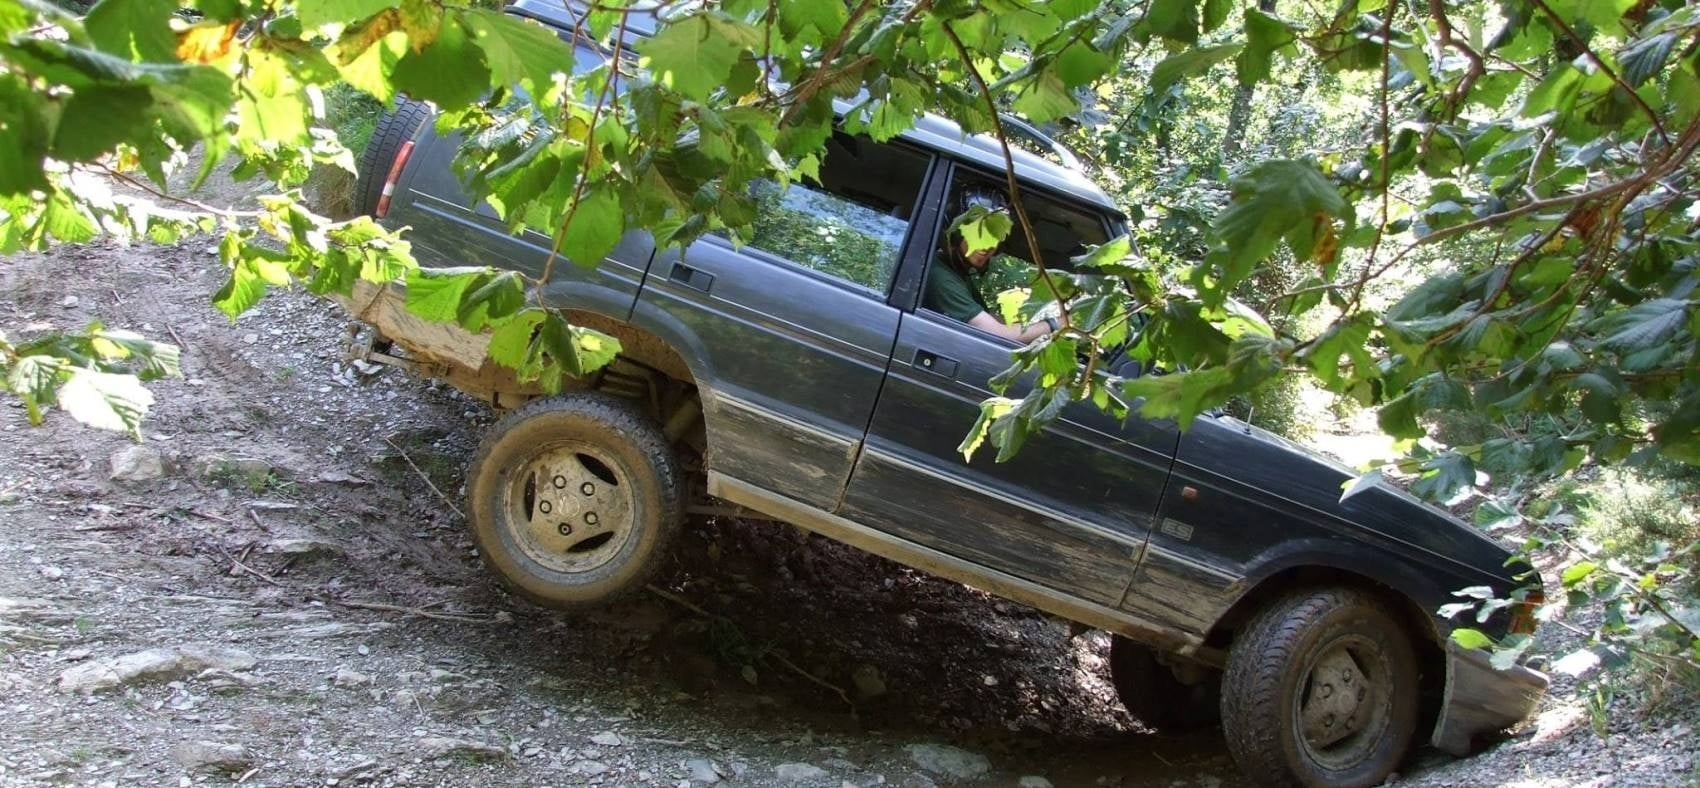 45 Minute 4x4 Driving Experience in Devon-5